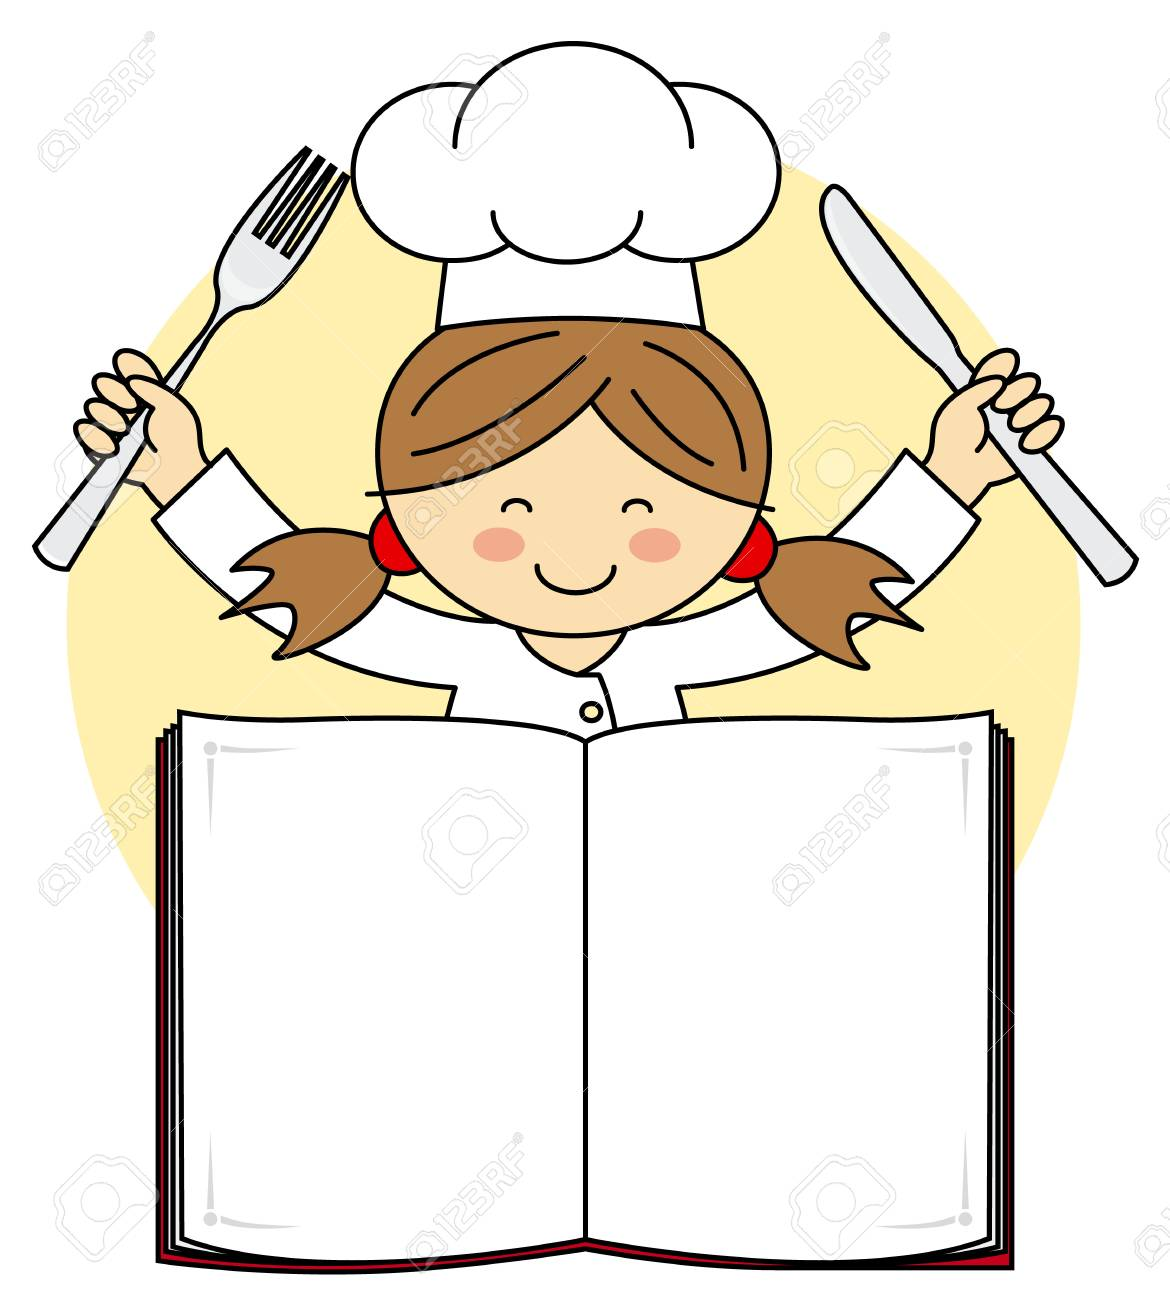 Chef girl clipart 7 » Clipart Station.